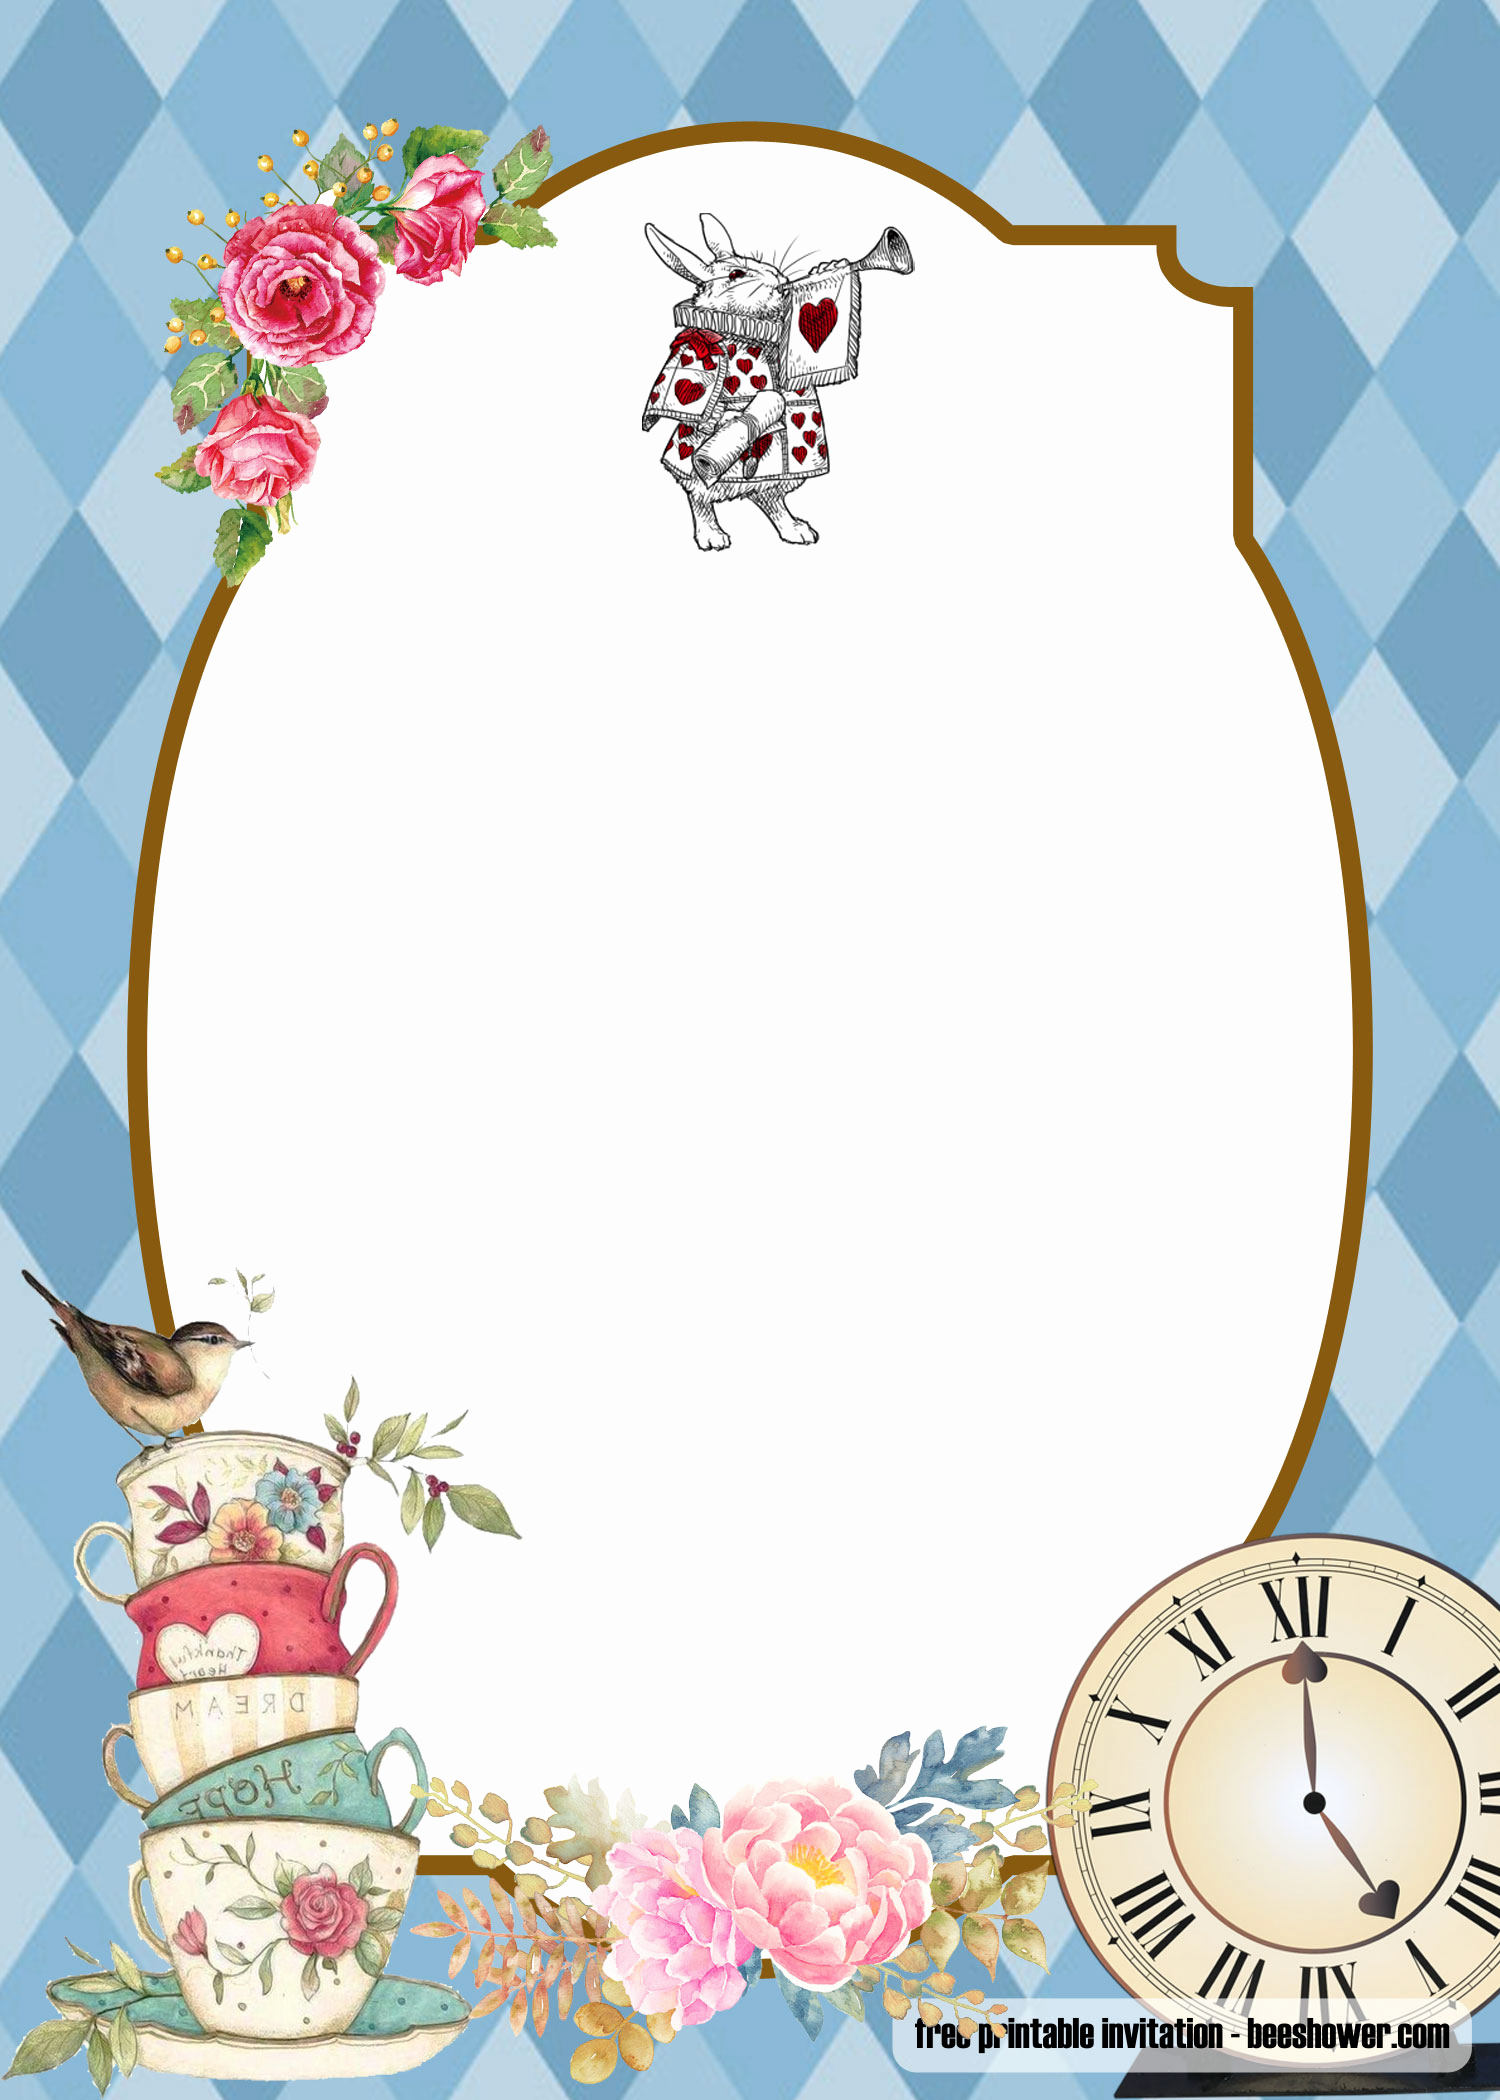 Alice In Wonderland Invitation Templates Fresh Free Alice In Wonderland Baby Shower Invitations Templates